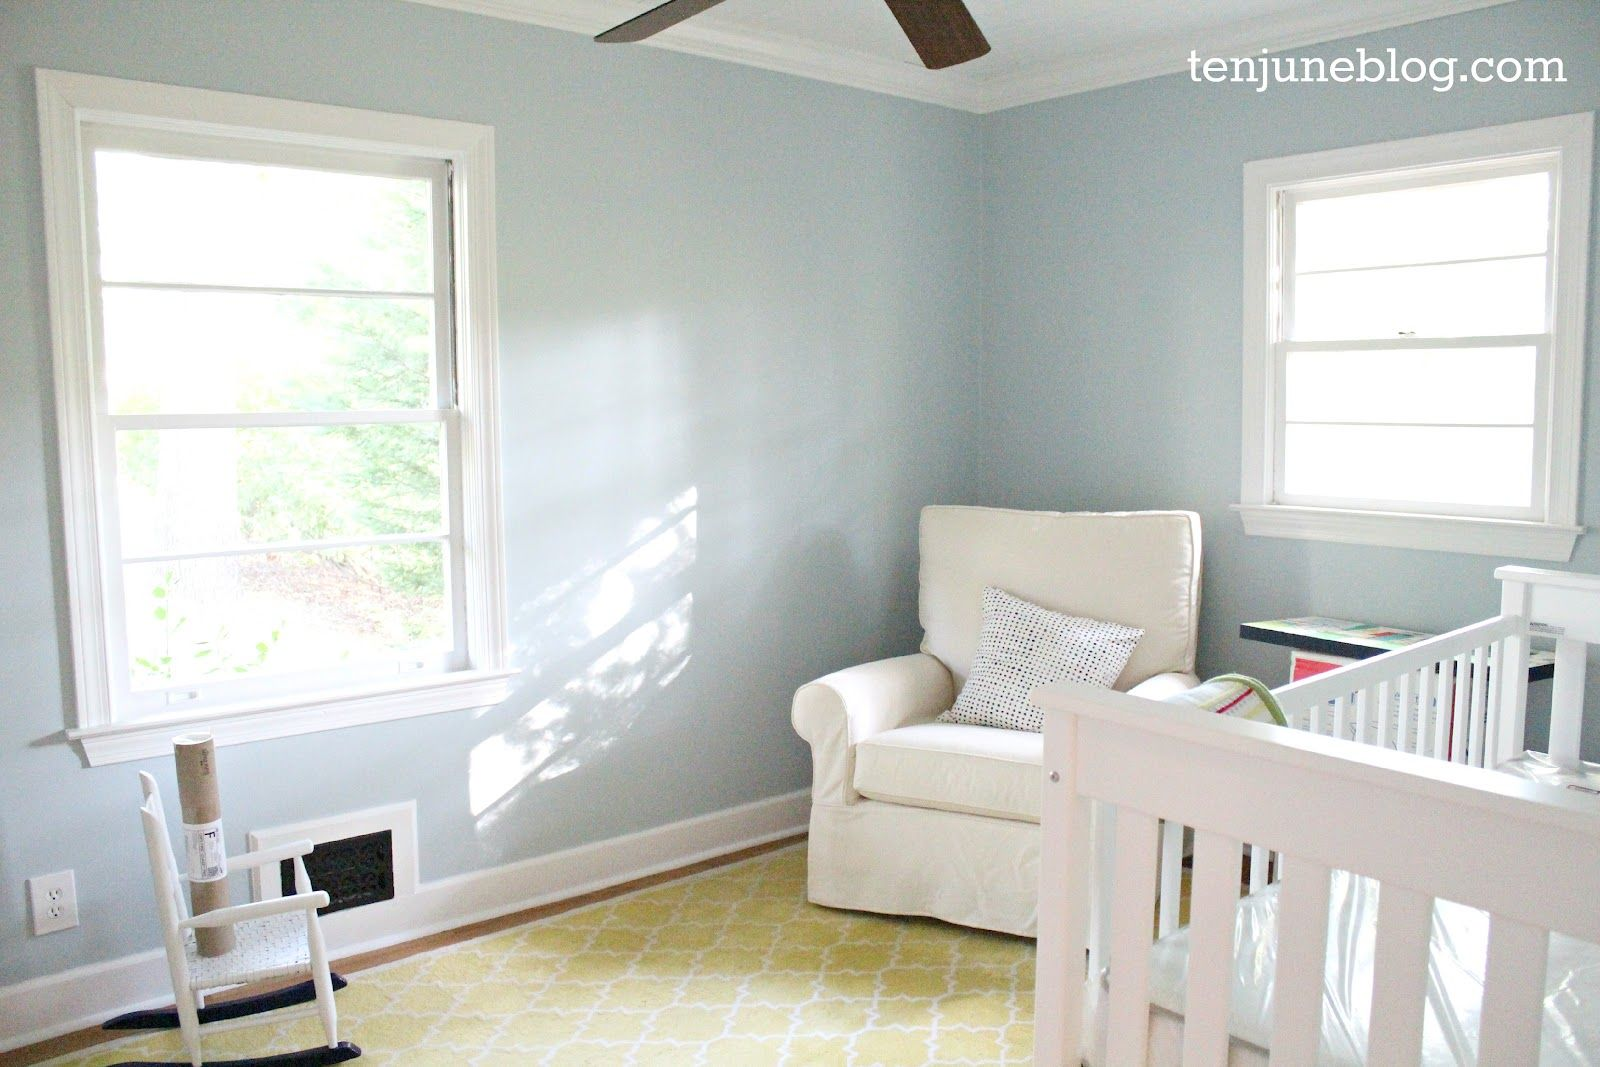 sherwin williams sleepy blue Boys room paint colors, Boy